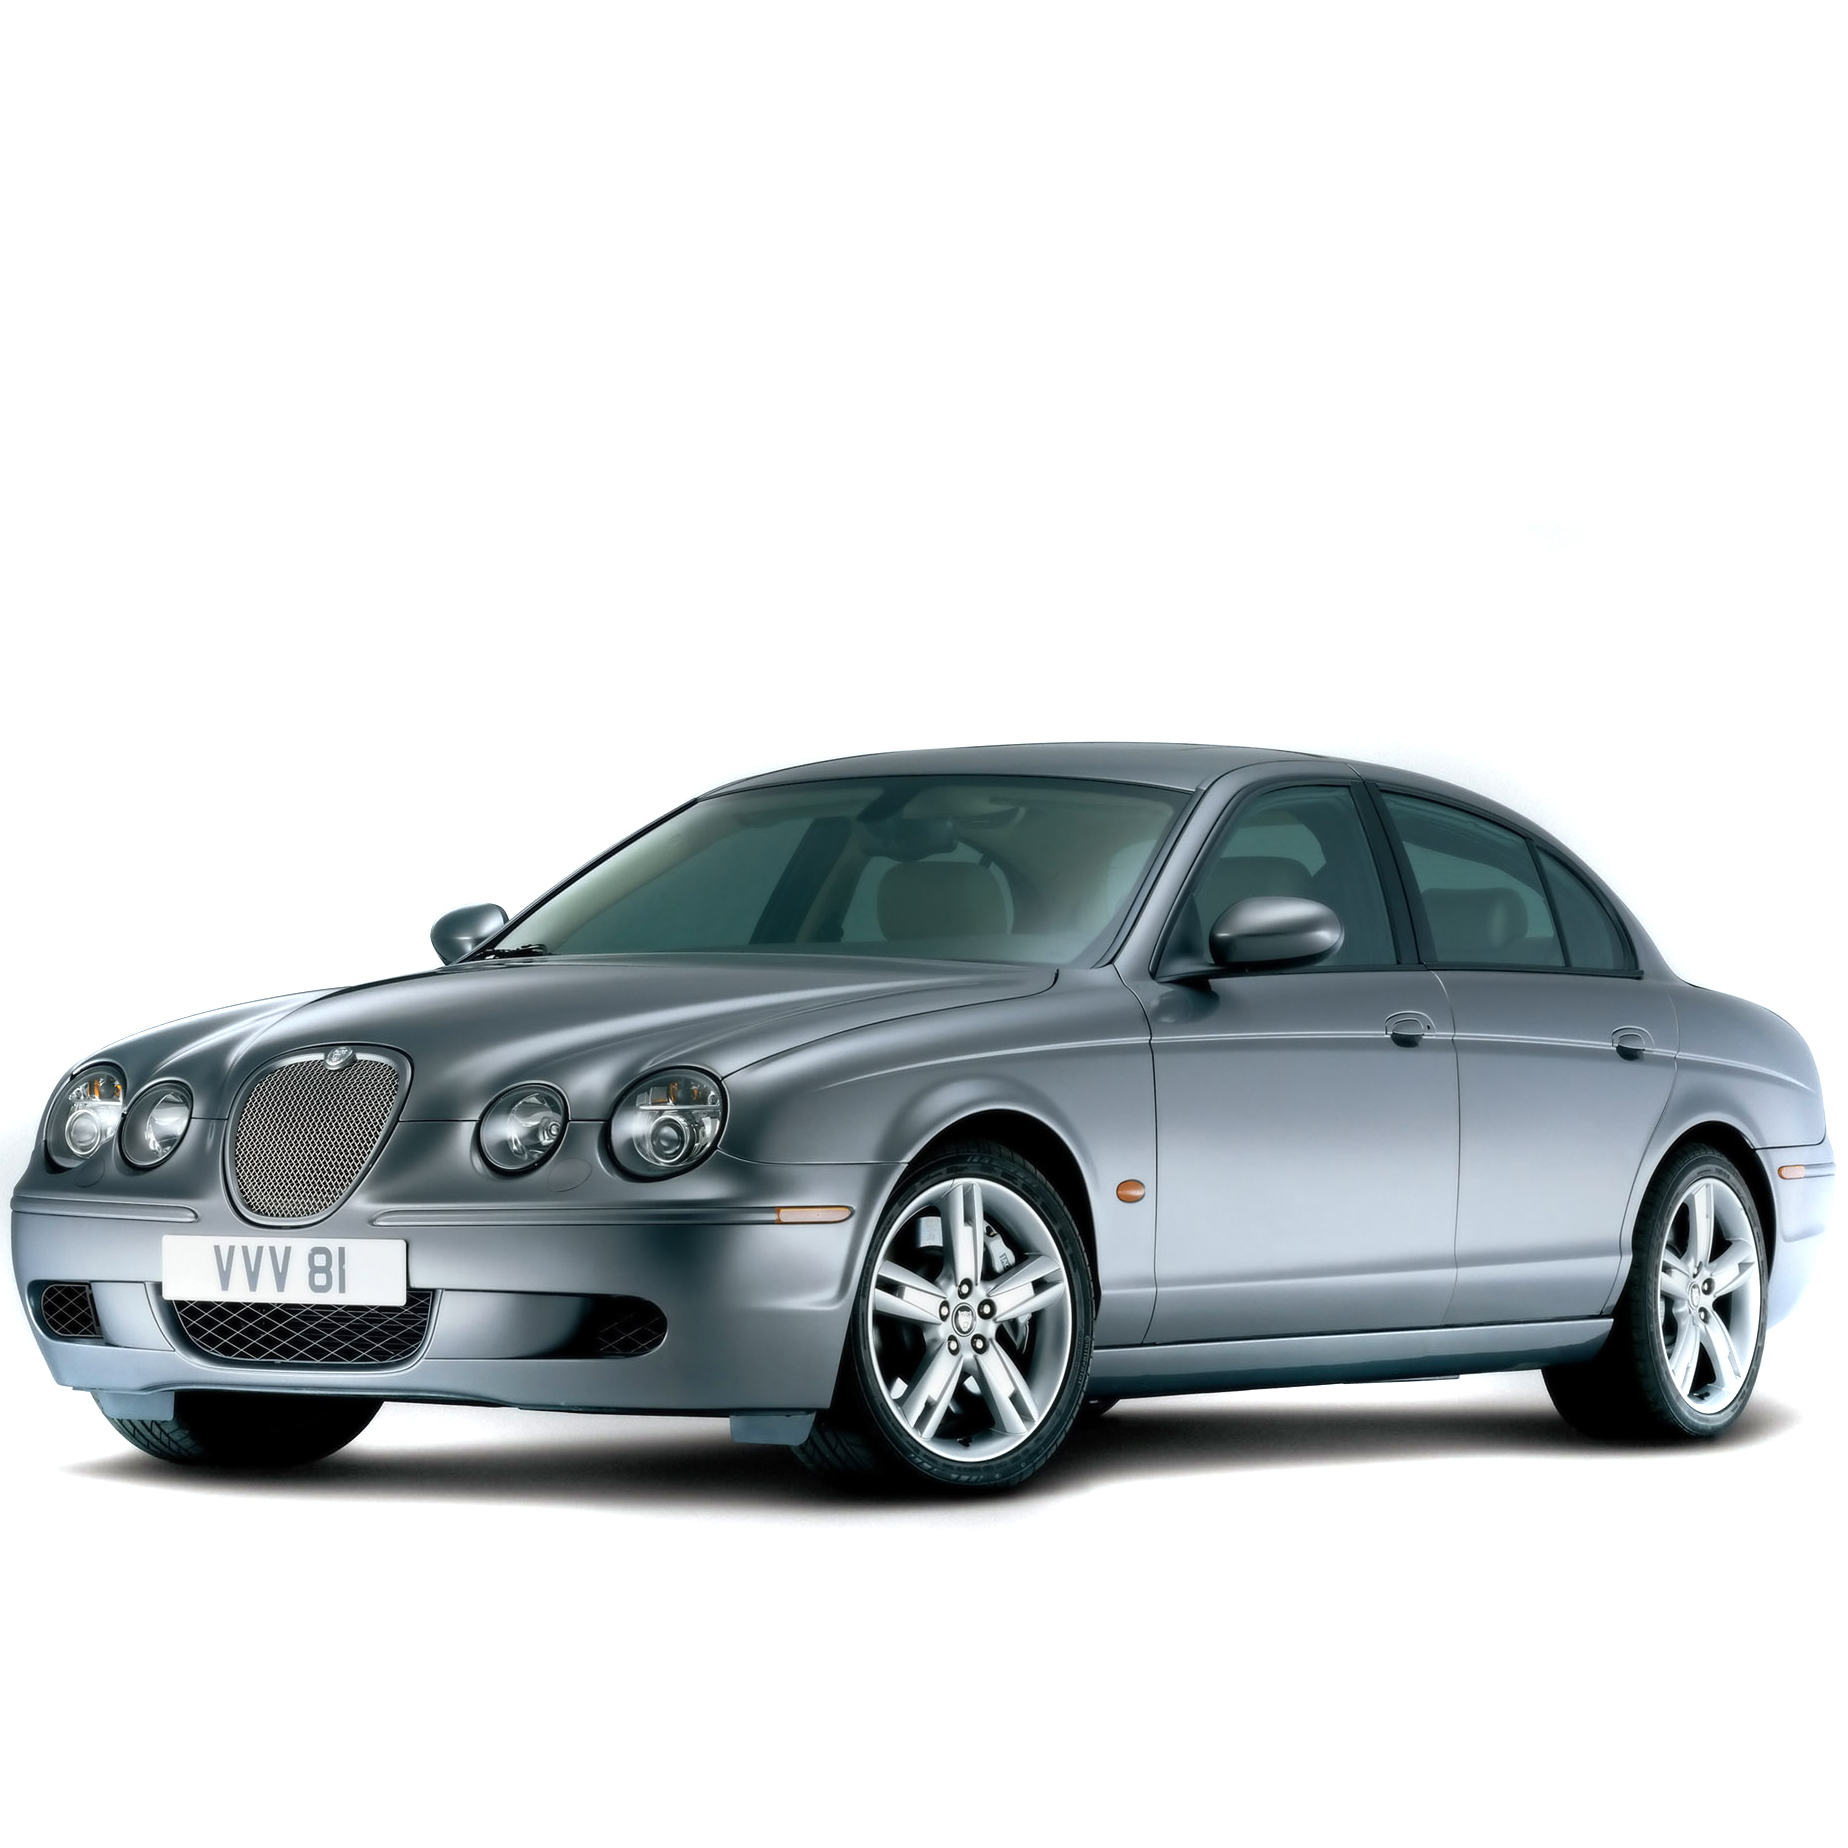 Jaguar S Type Mk3 2004 - 2008 (automatic)